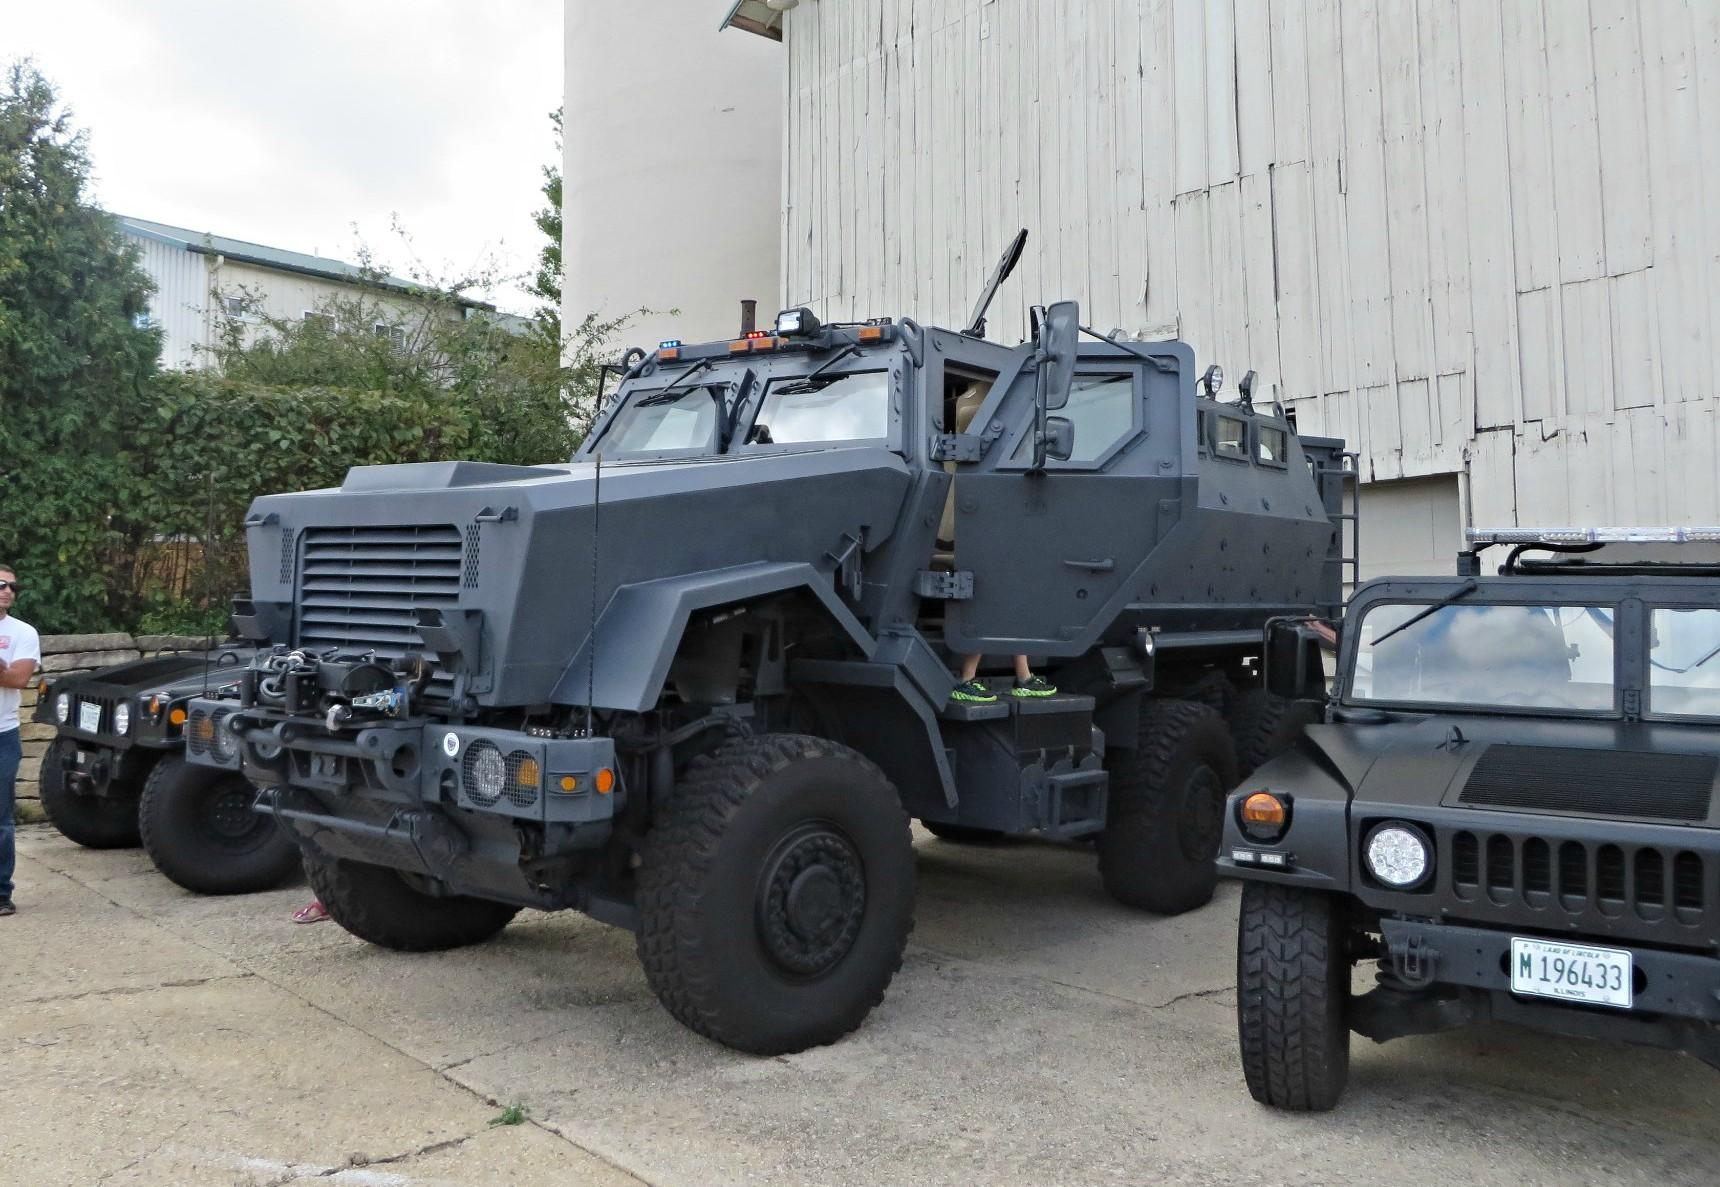 AG: Trump ends limits on military gear for cops